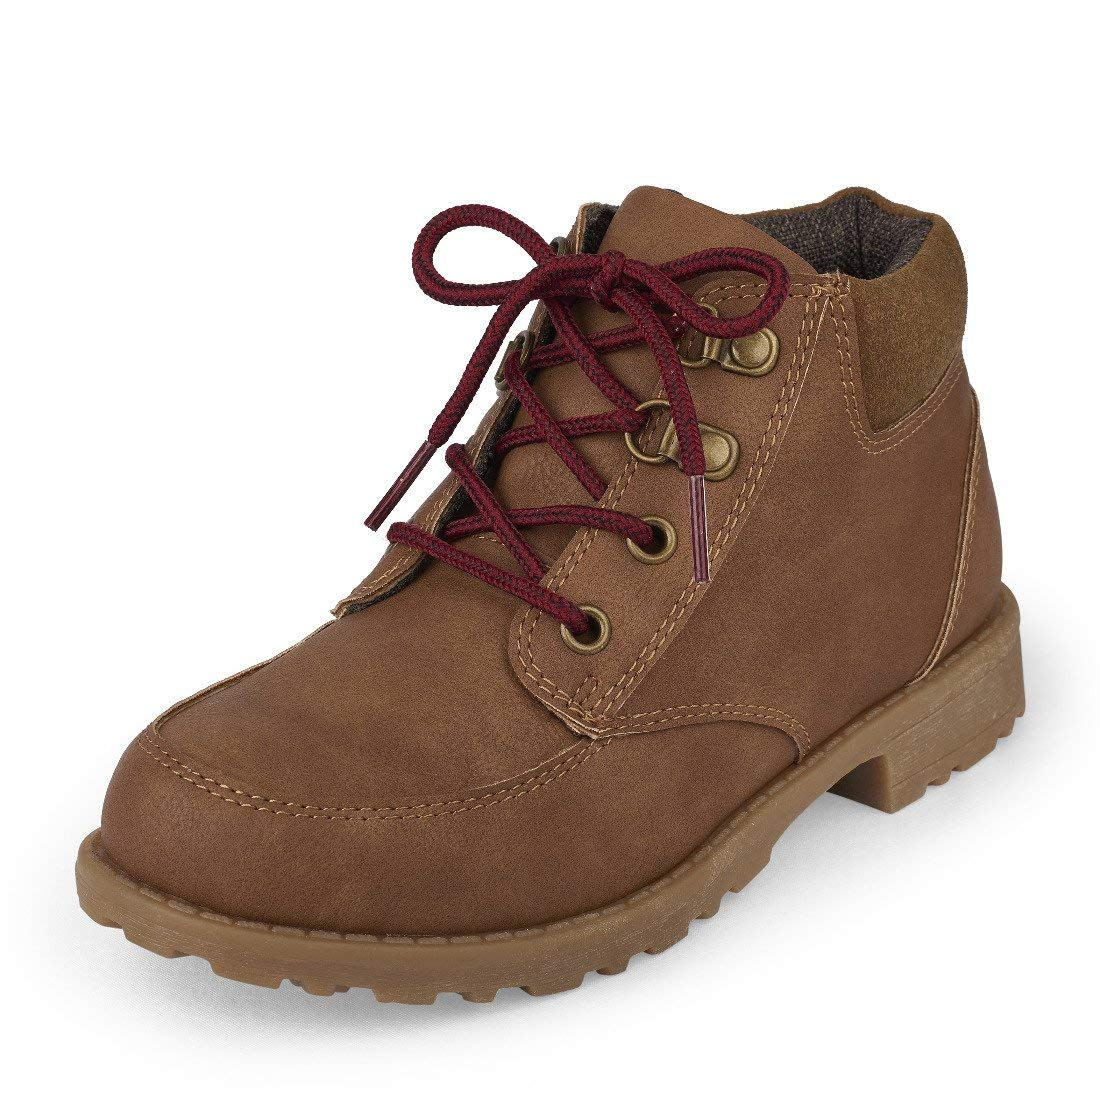 The Children's Place Boys' Ankle Boot, Tan-Boot-3, TDDLR 9 M US Toddler